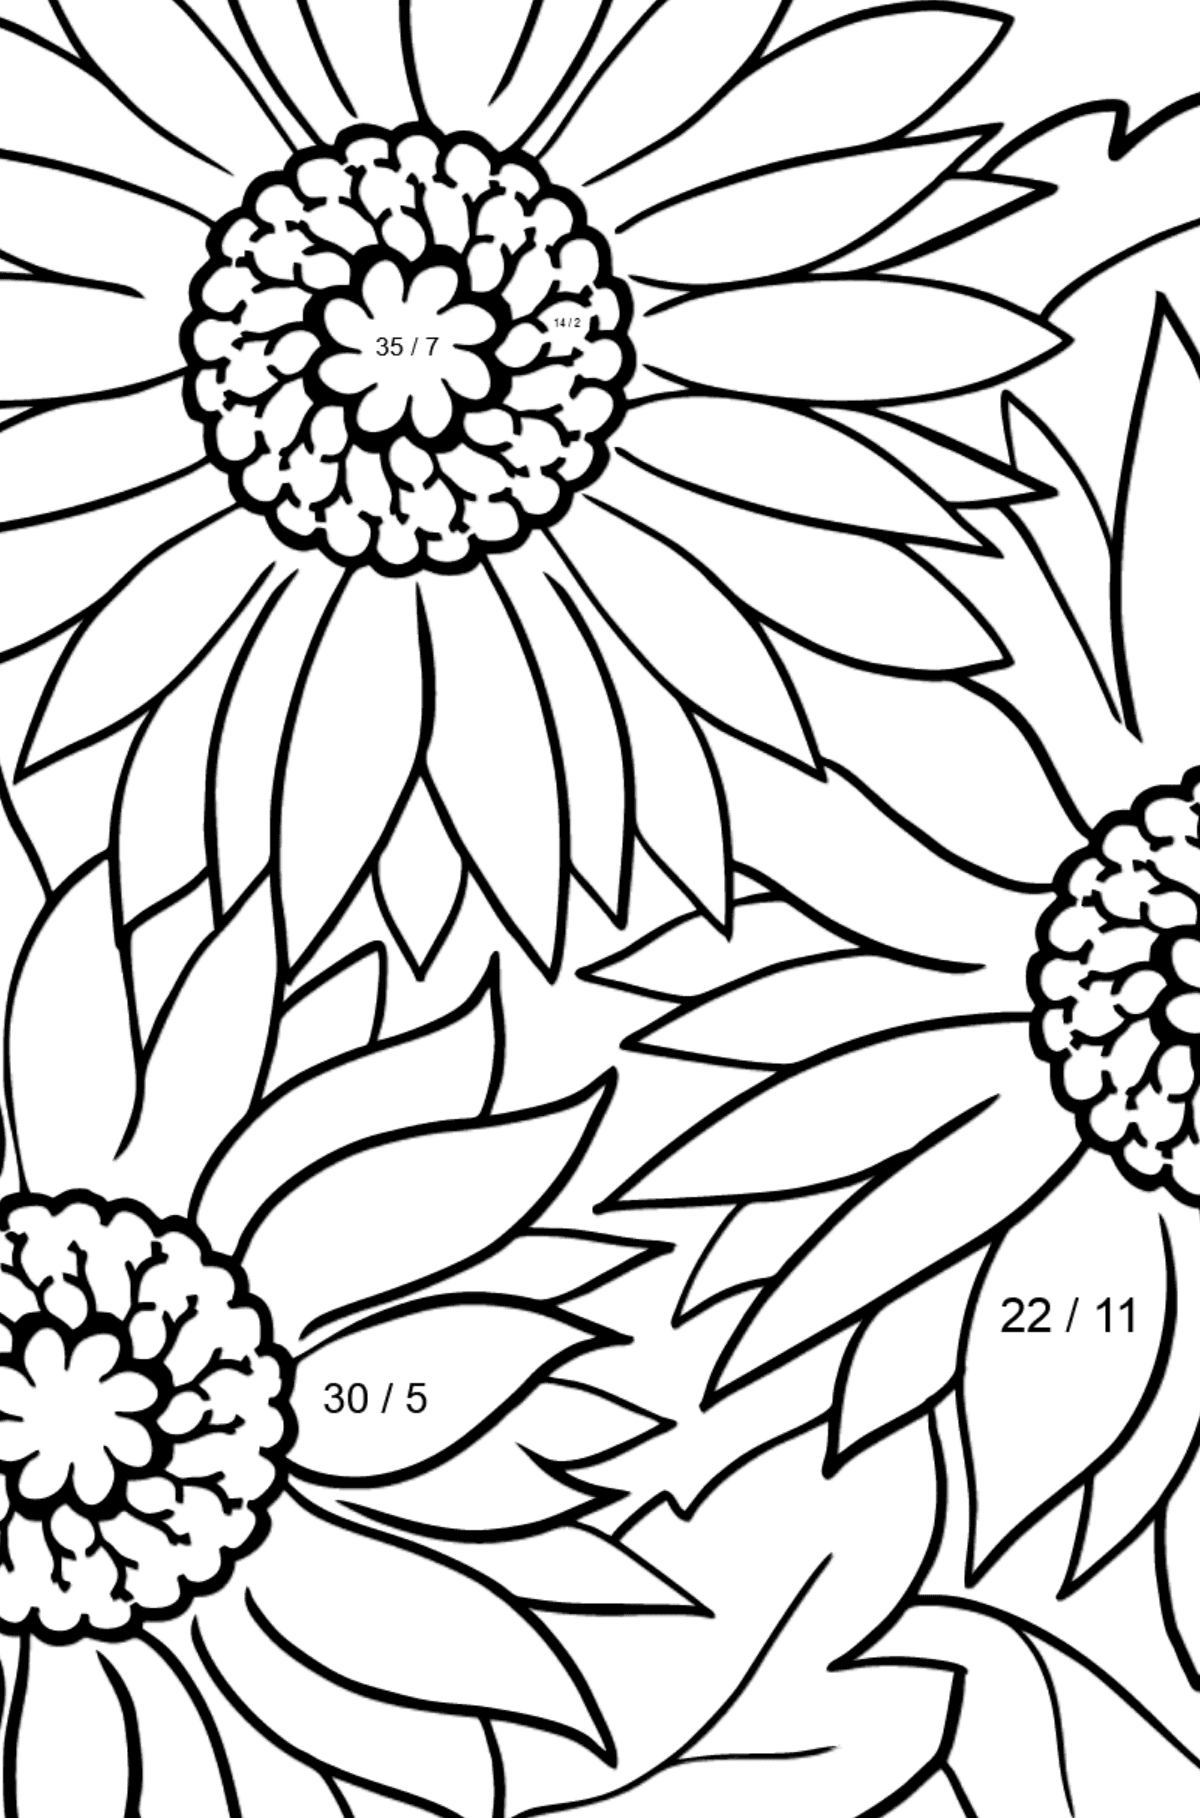 Coloring Flowers for the Youngest Children - Pink Gerbera - Math Coloring - Division for Kids